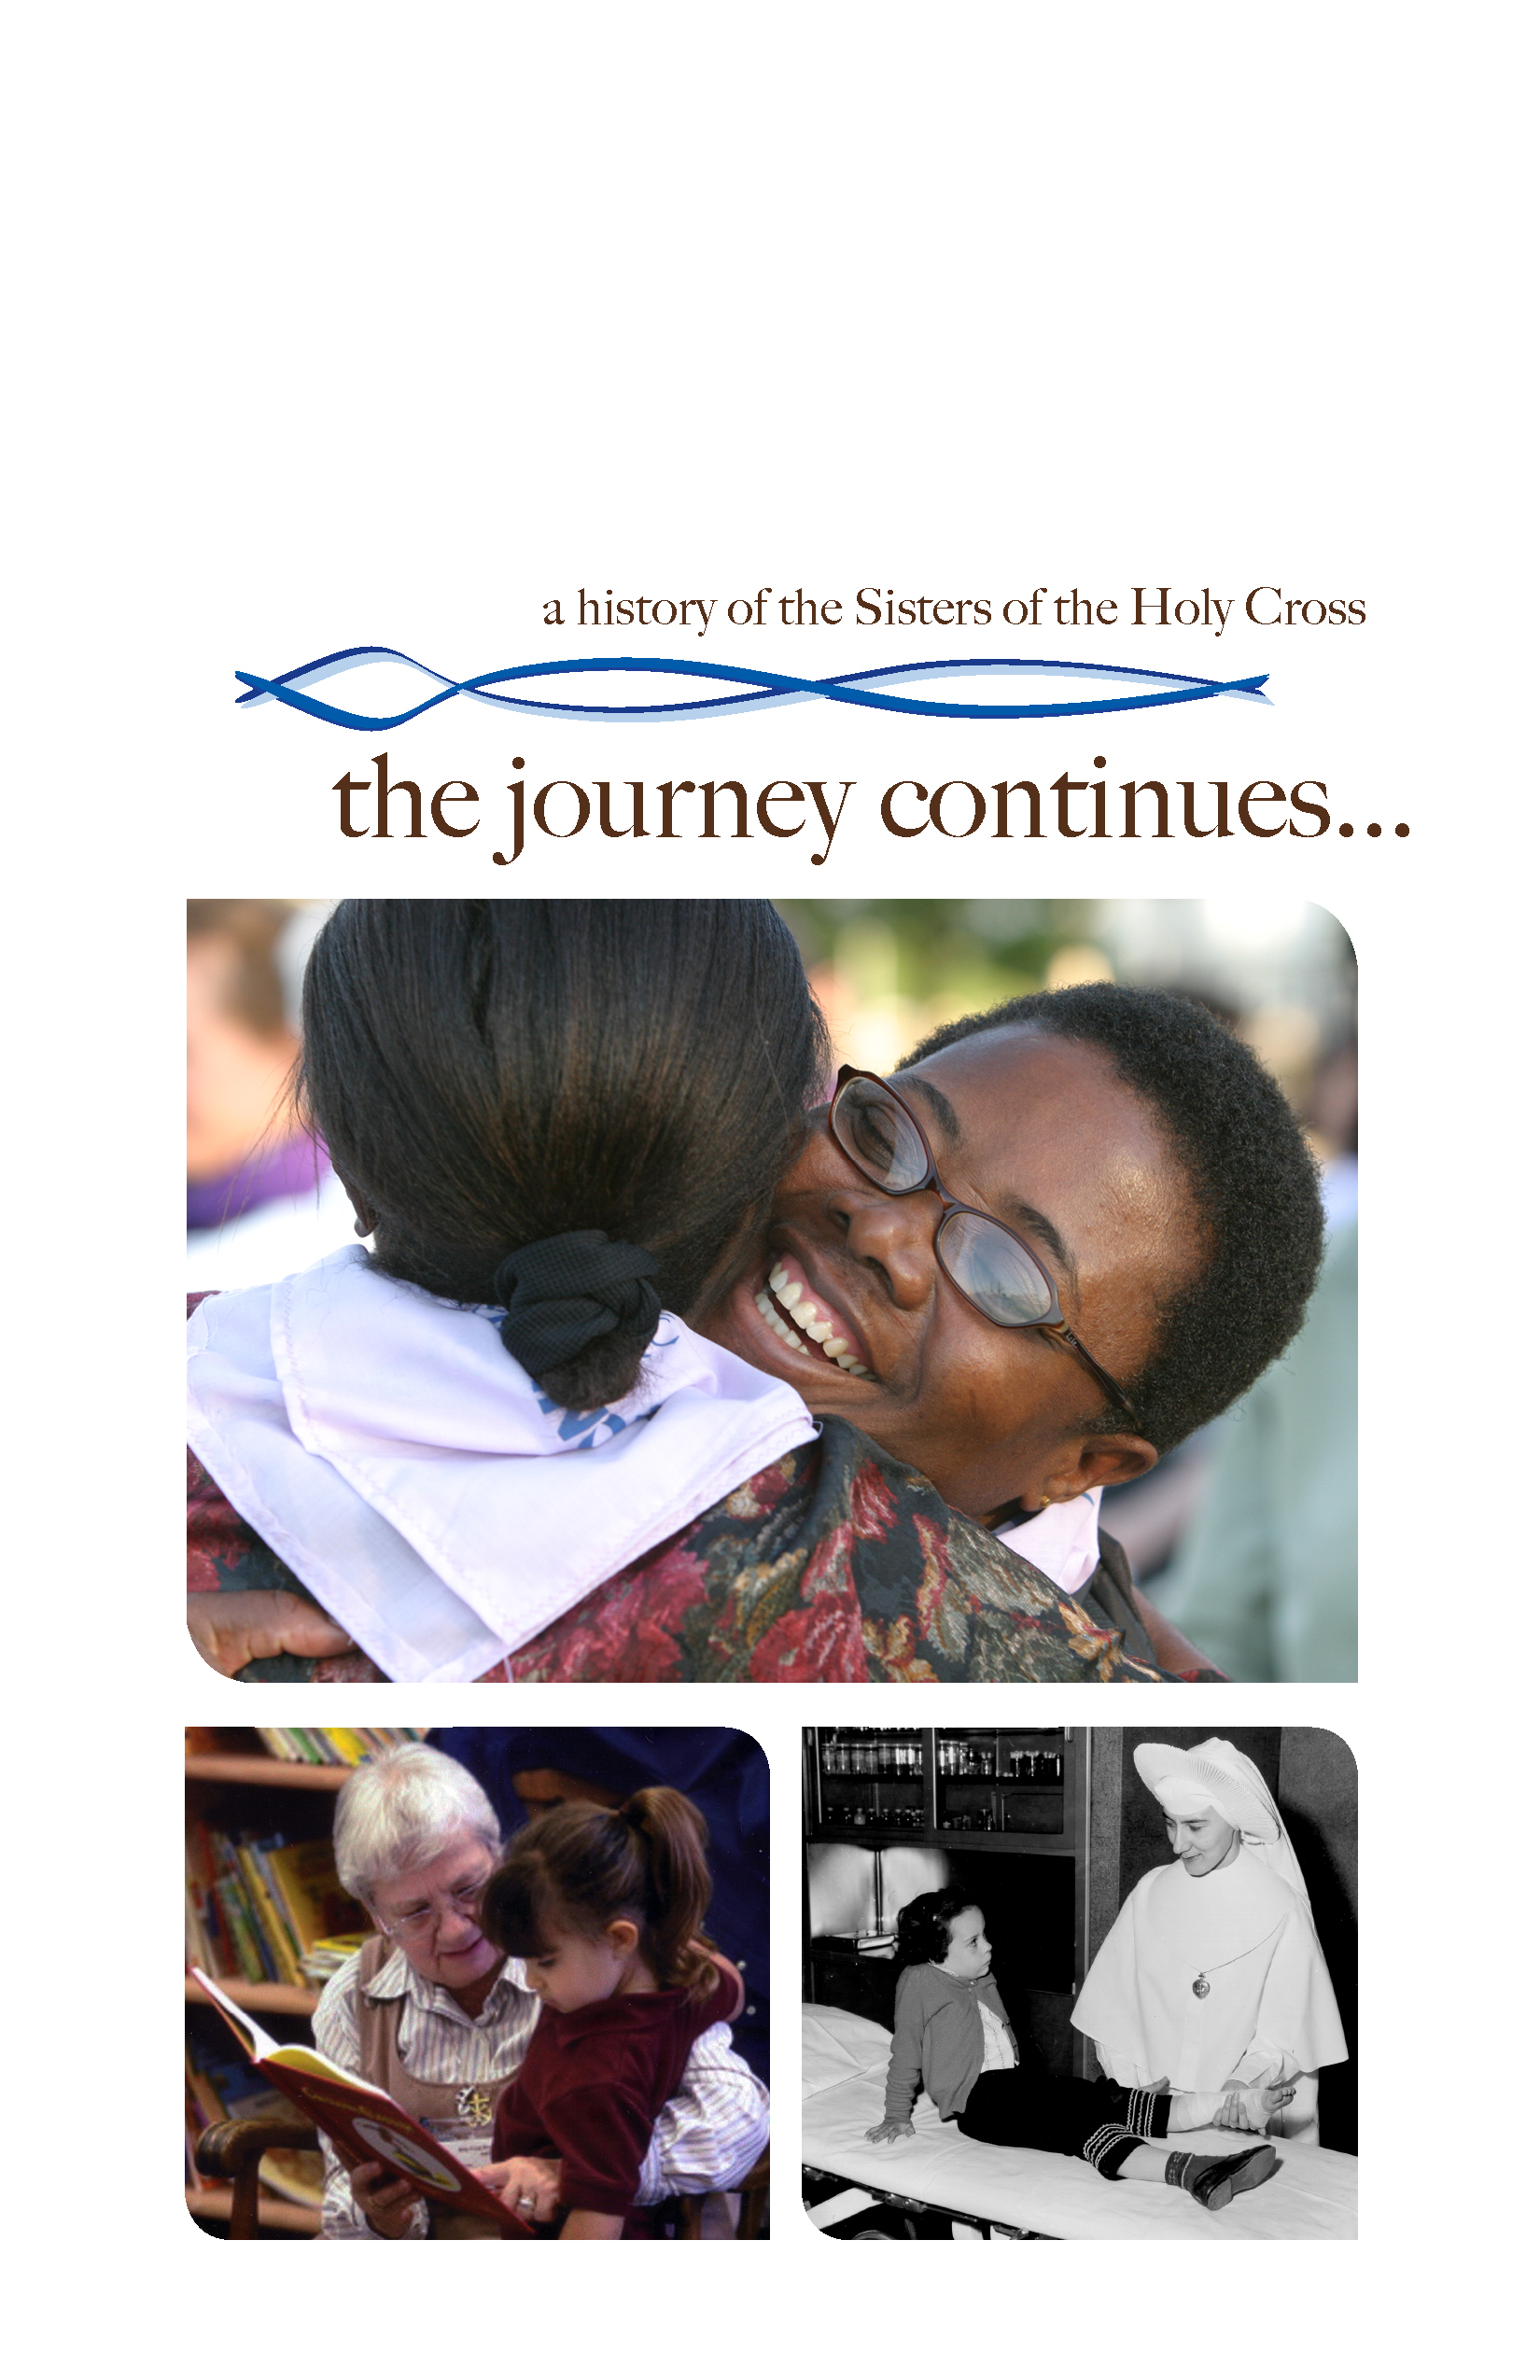 the journey continues... a history of the Sisters of the Holy Cross